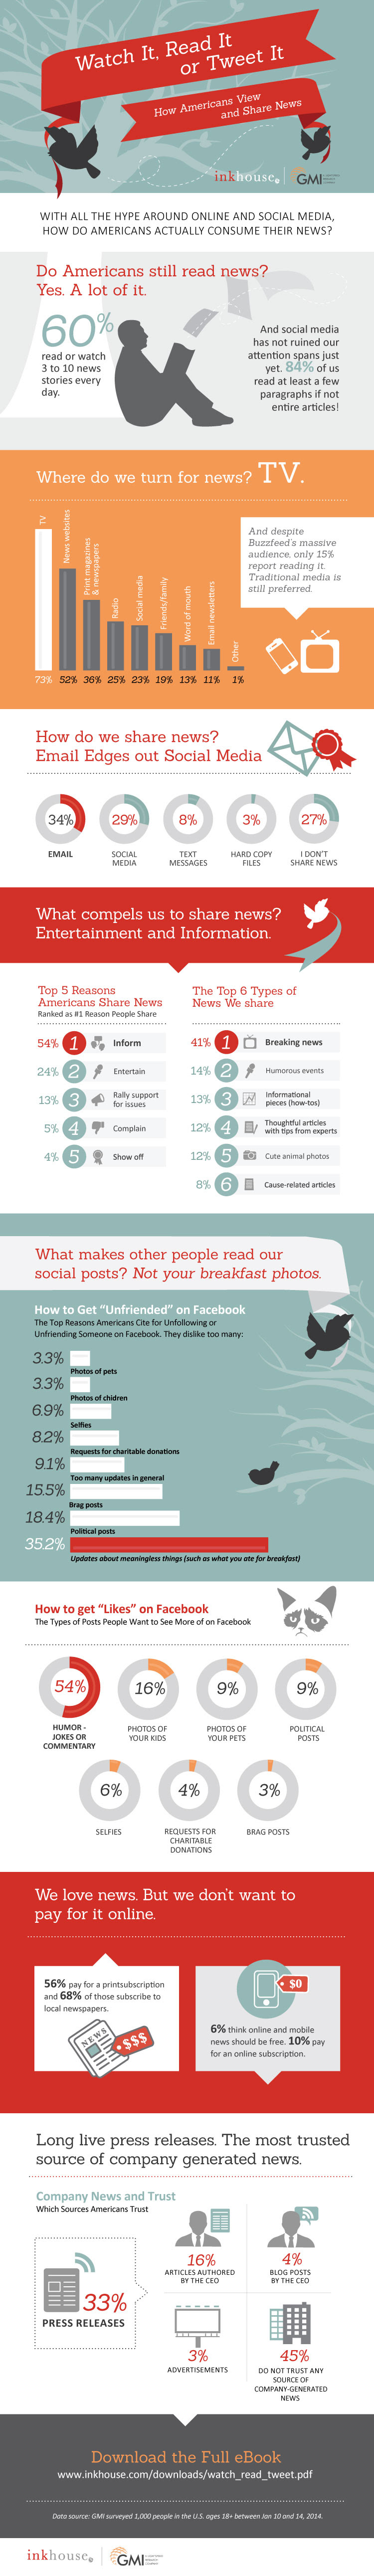 Read It, Watch It, or Tweet It – How Americans Read and Share News - infographic